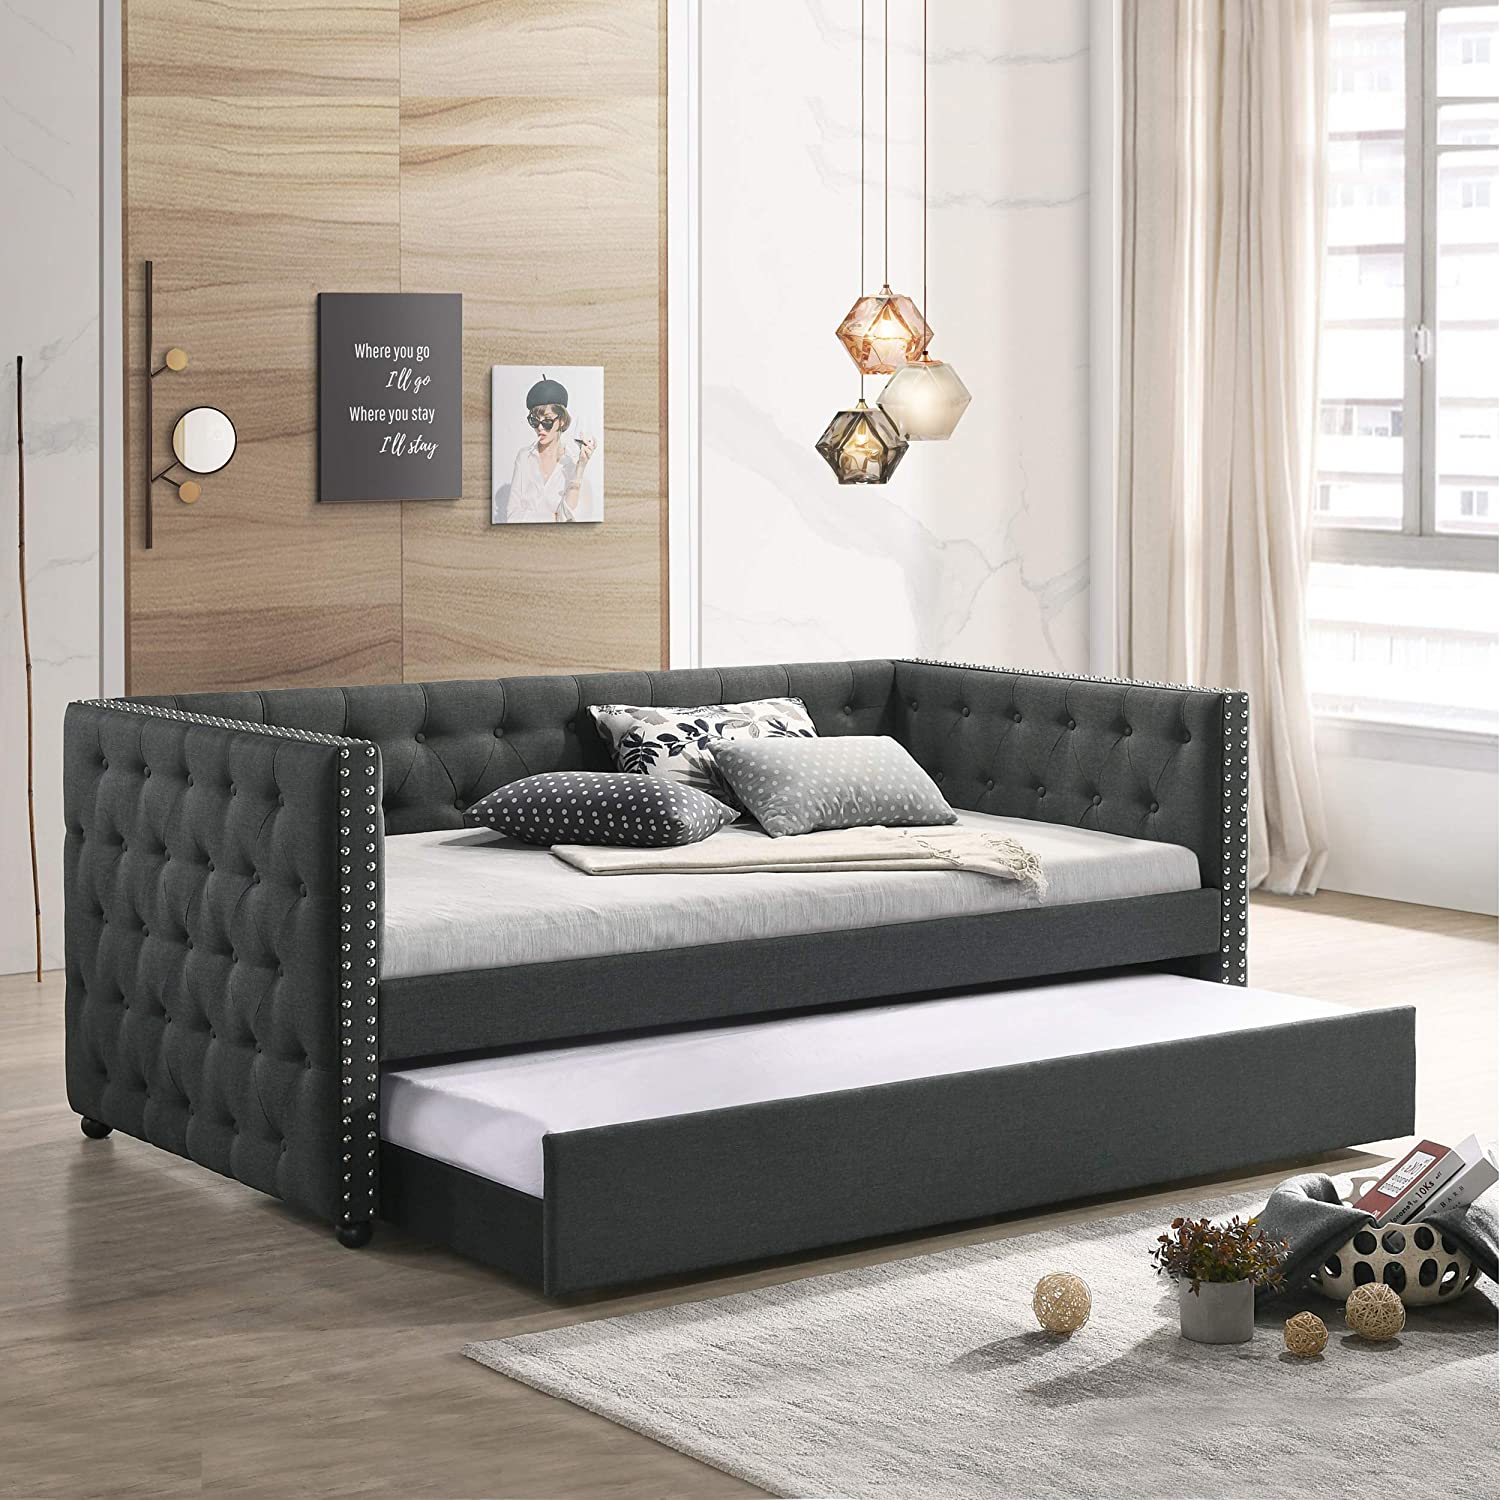 Daybed with A Trundle, HABITRIO Solid Wood Structure Gray Fabric Upholstered Twin Size Day Bed Frame w/Twin Size Roll-Out Trundle, No Box Spring Needed, Furniture for Bedroom, Living Room, Guest Room